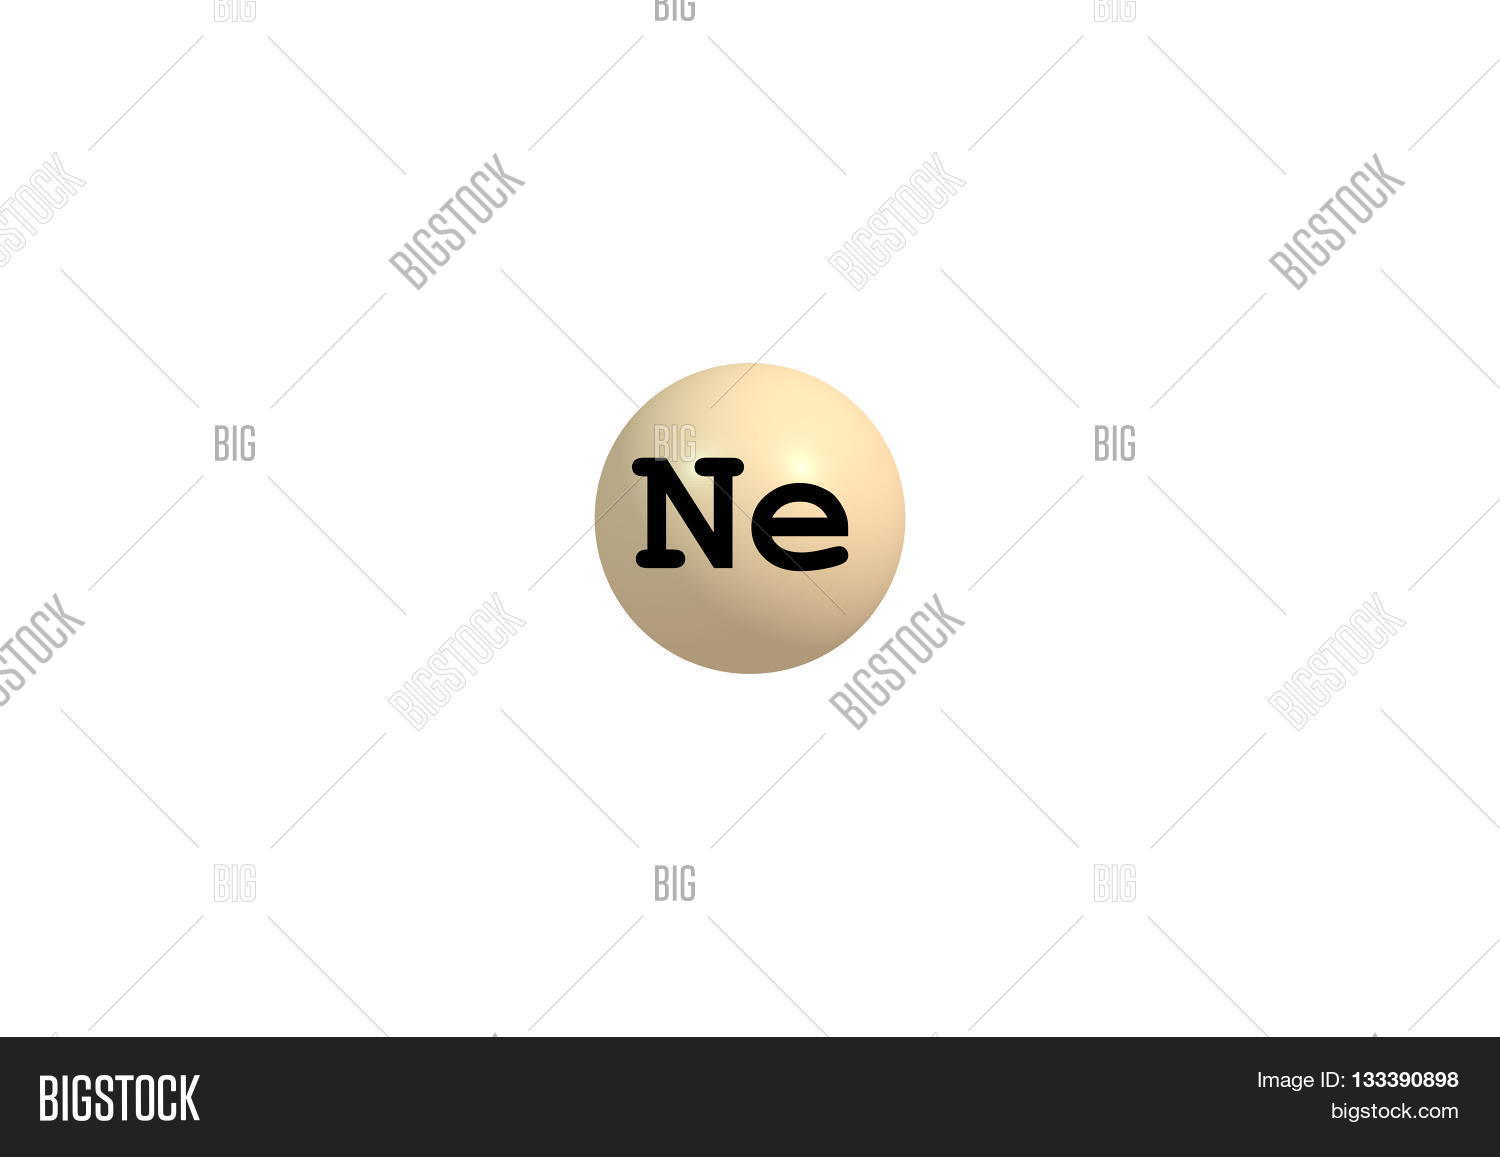 Neon chemical element image photo free trial bigstock neon is a chemical element with symbol ne and atomic number 10 it is in urtaz Choice Image